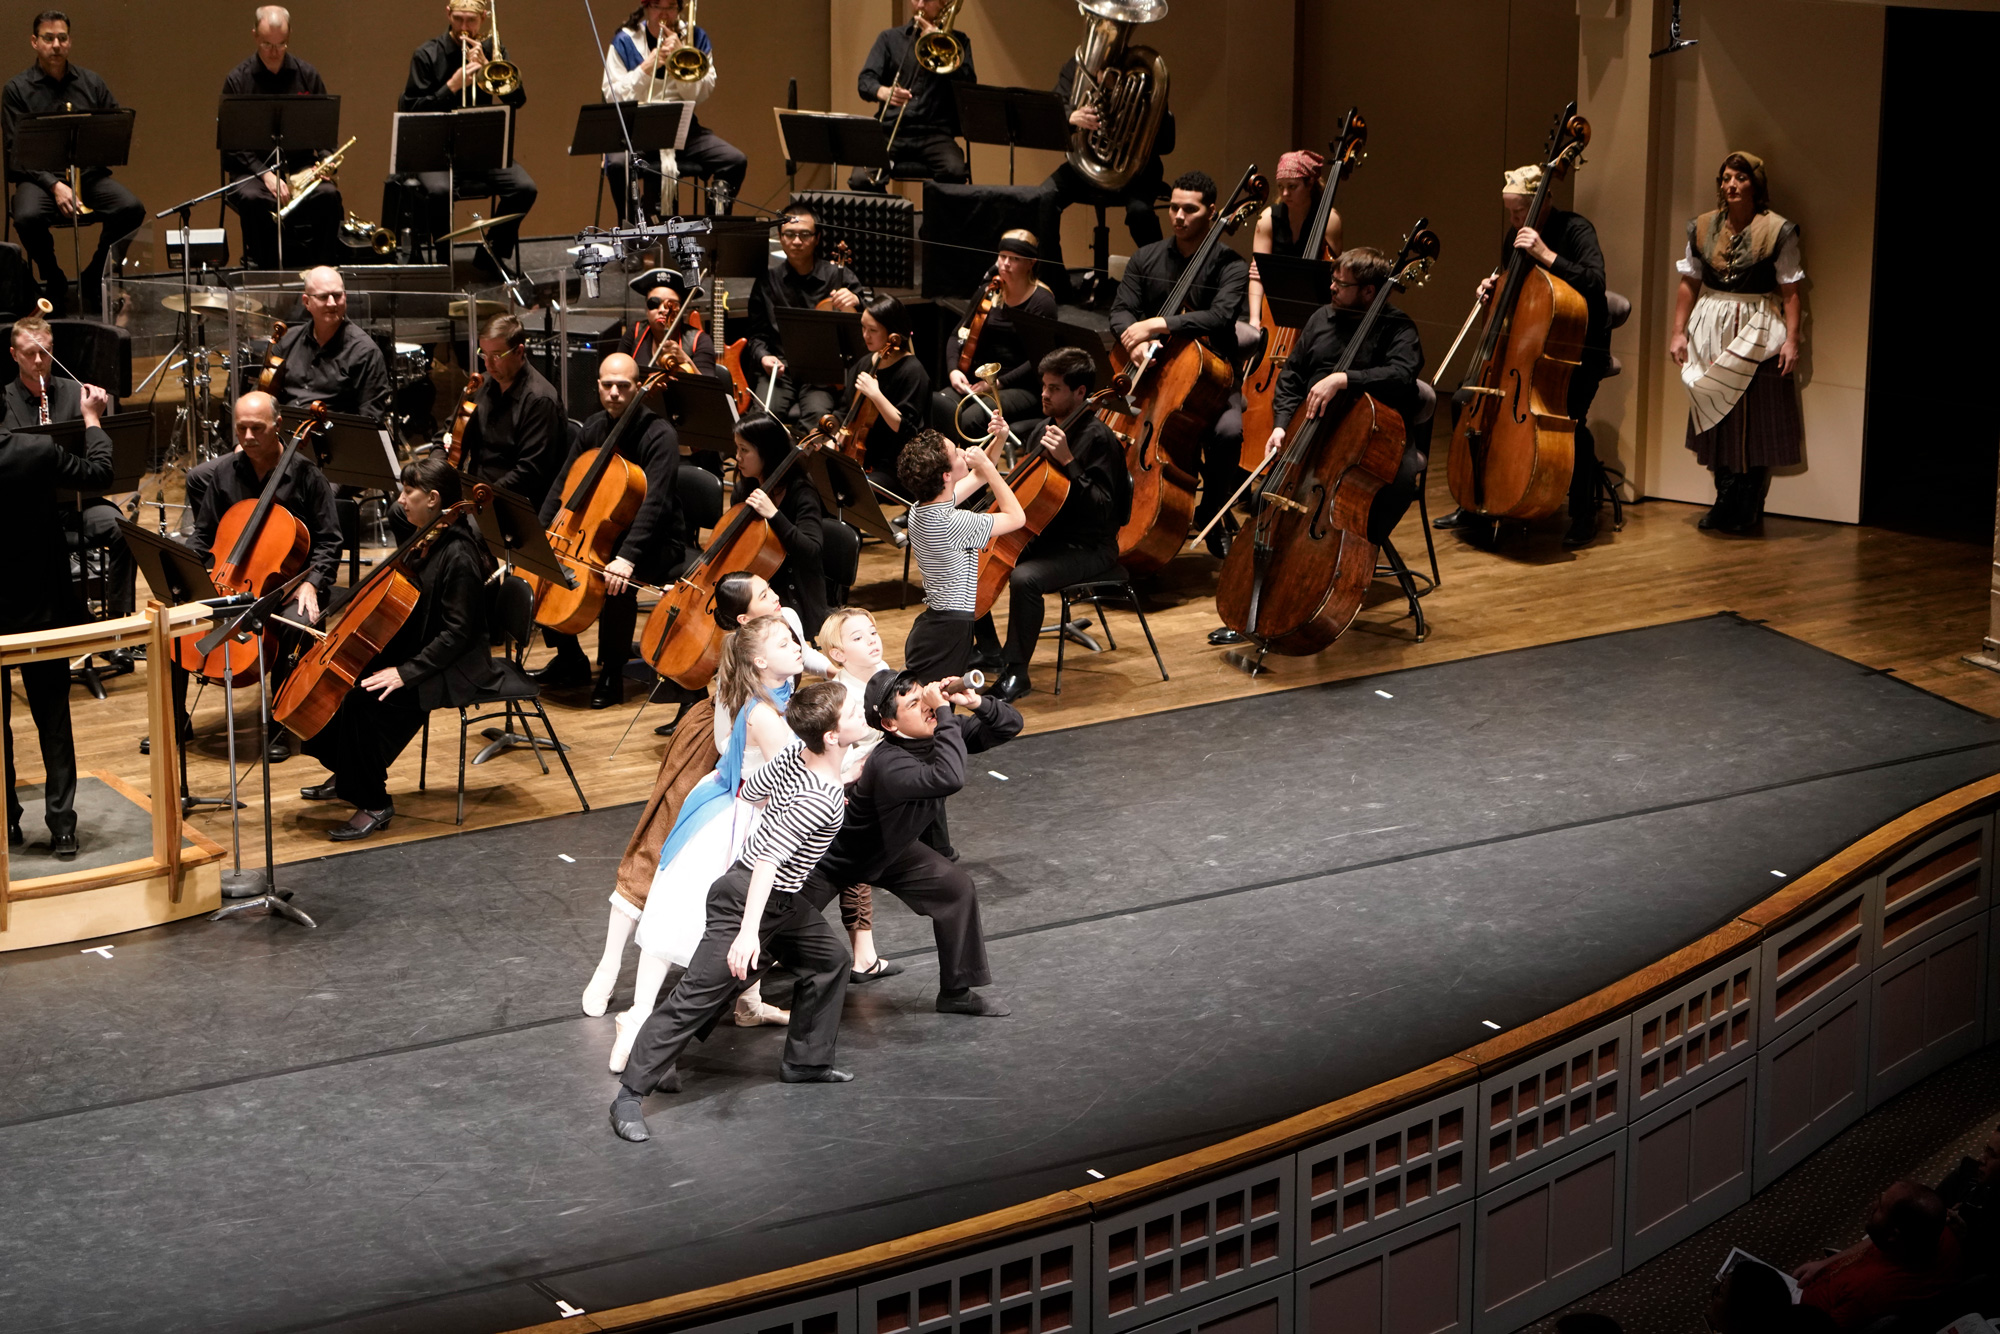 Dancers appear in front of the orchestra